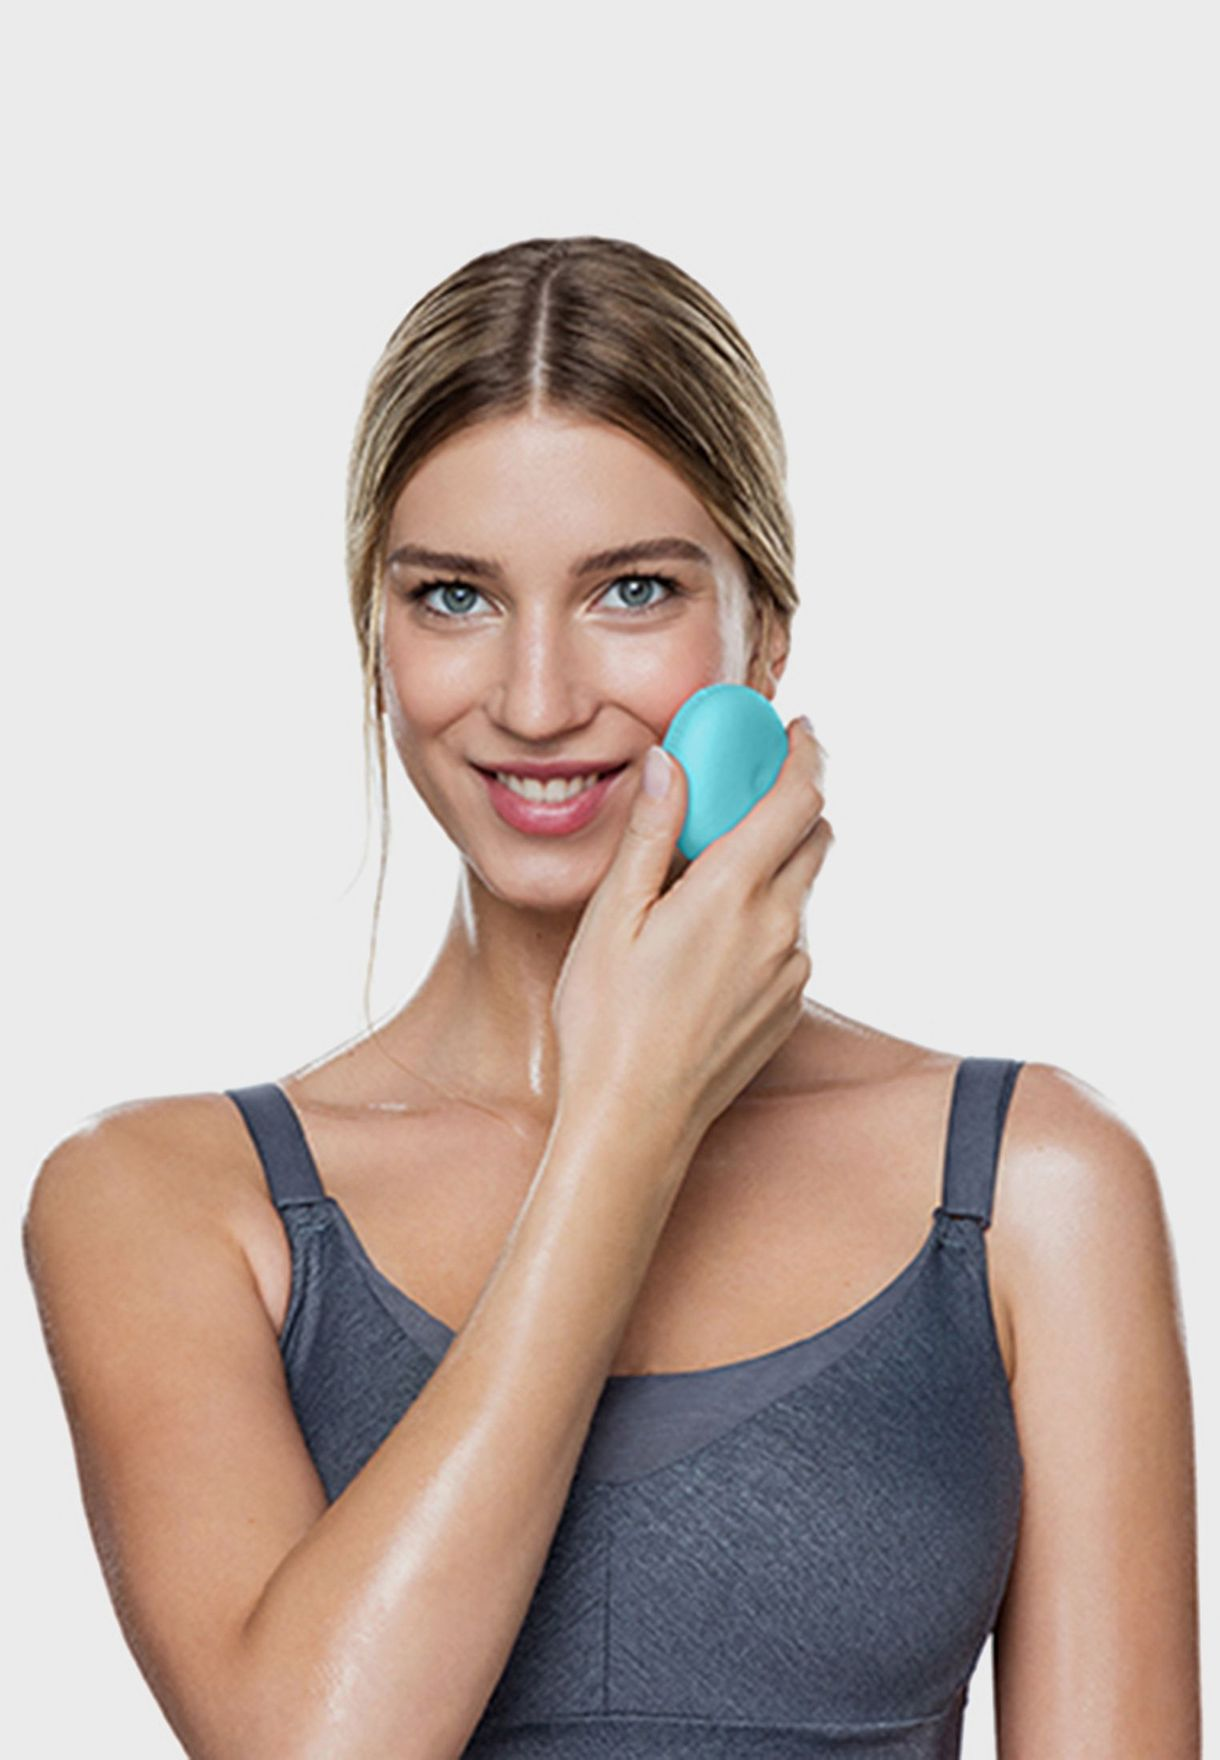 LUNA play plus Facial Cleansing Brush - Mint